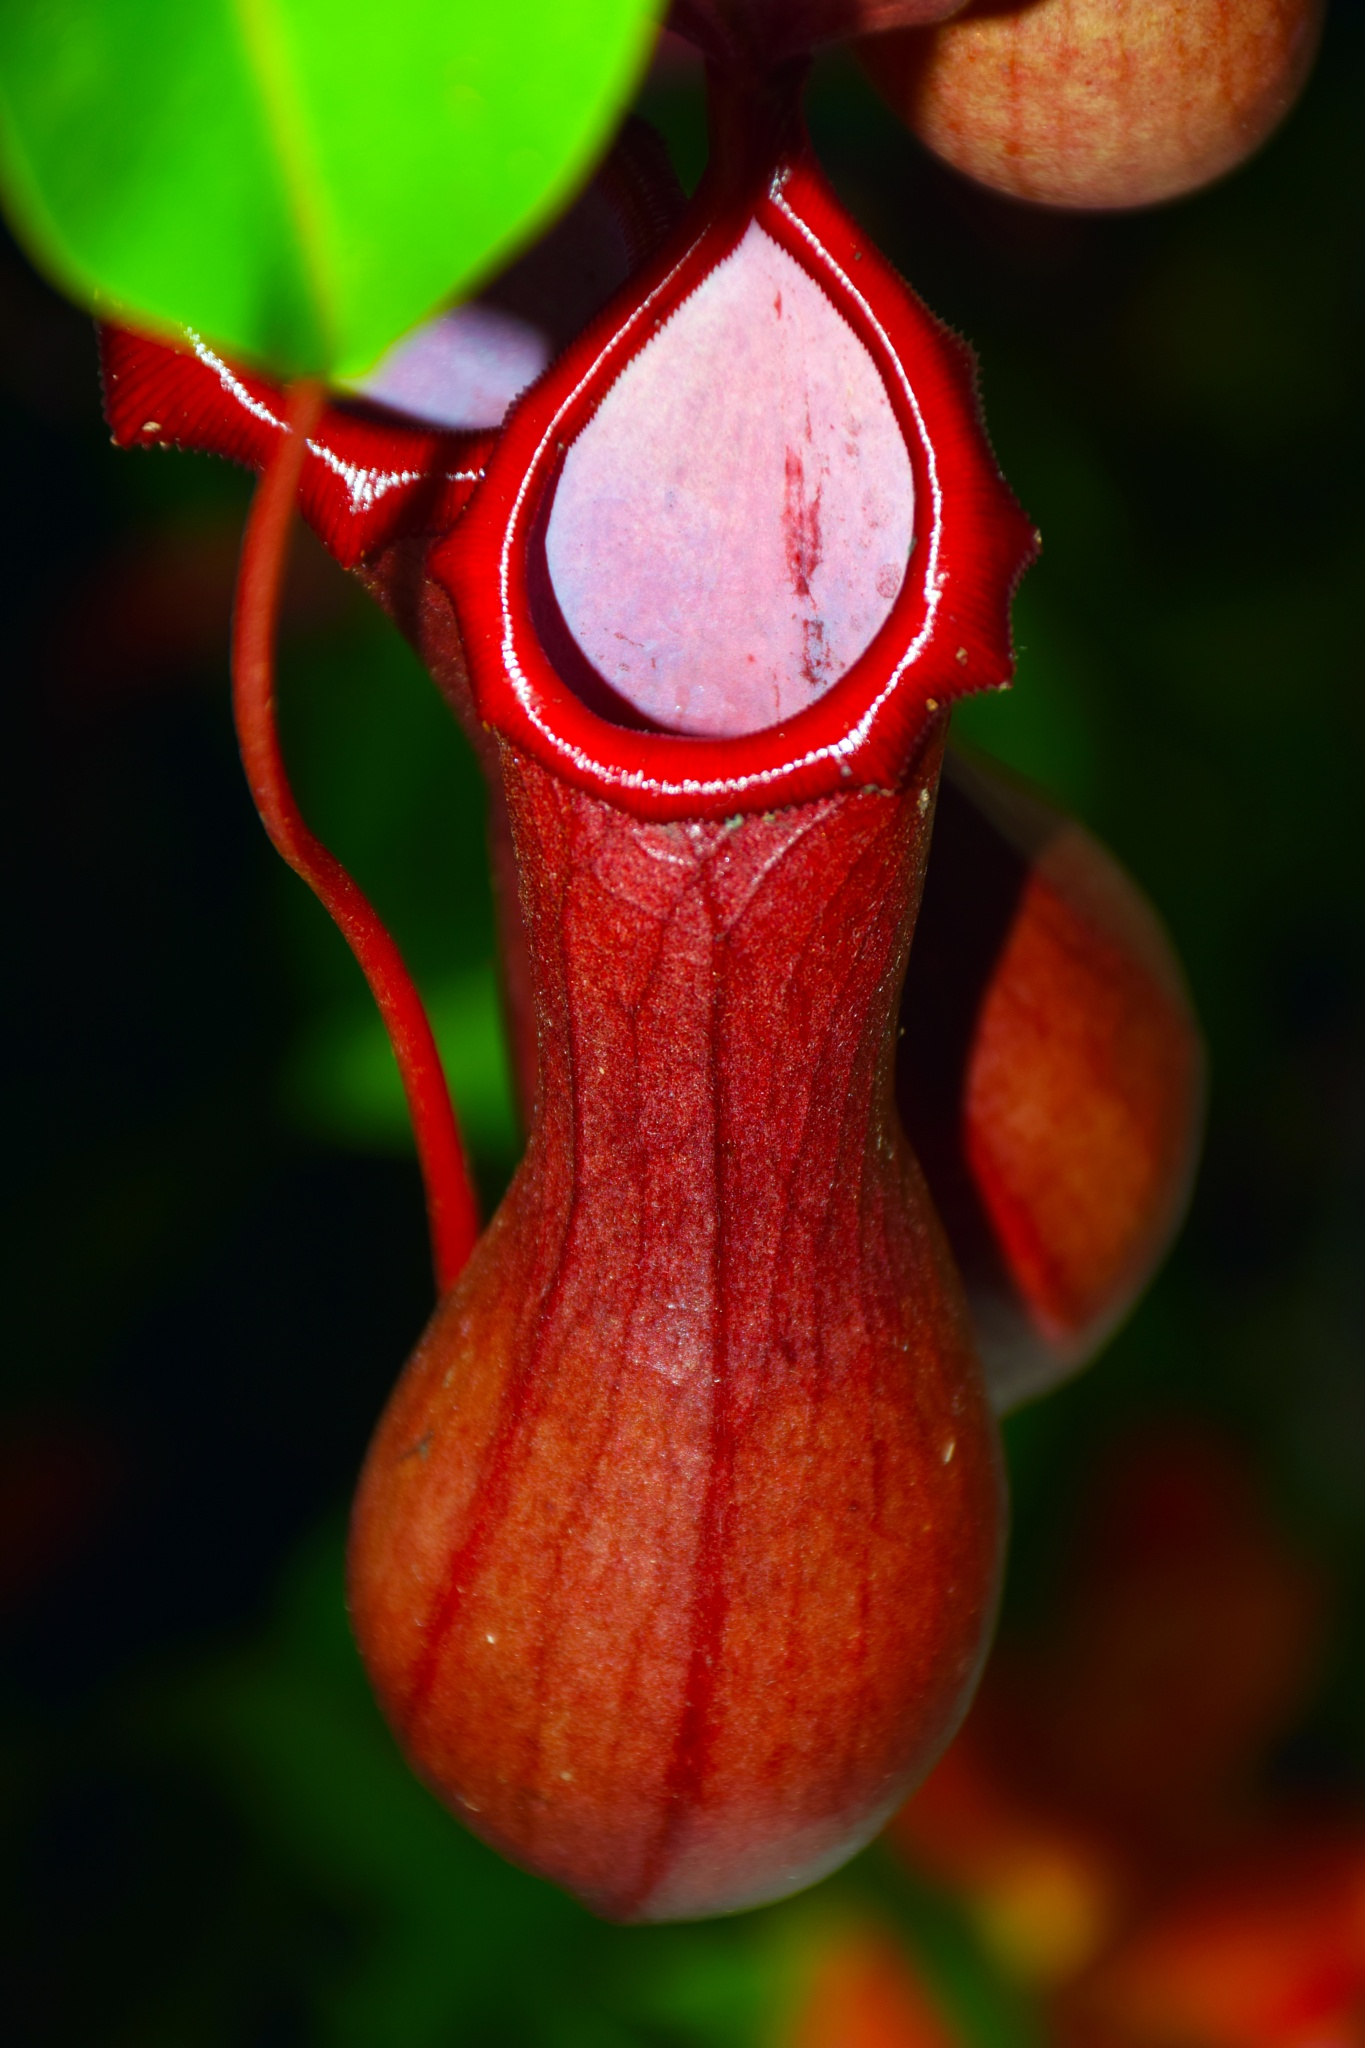 Nepenthes by peppe953